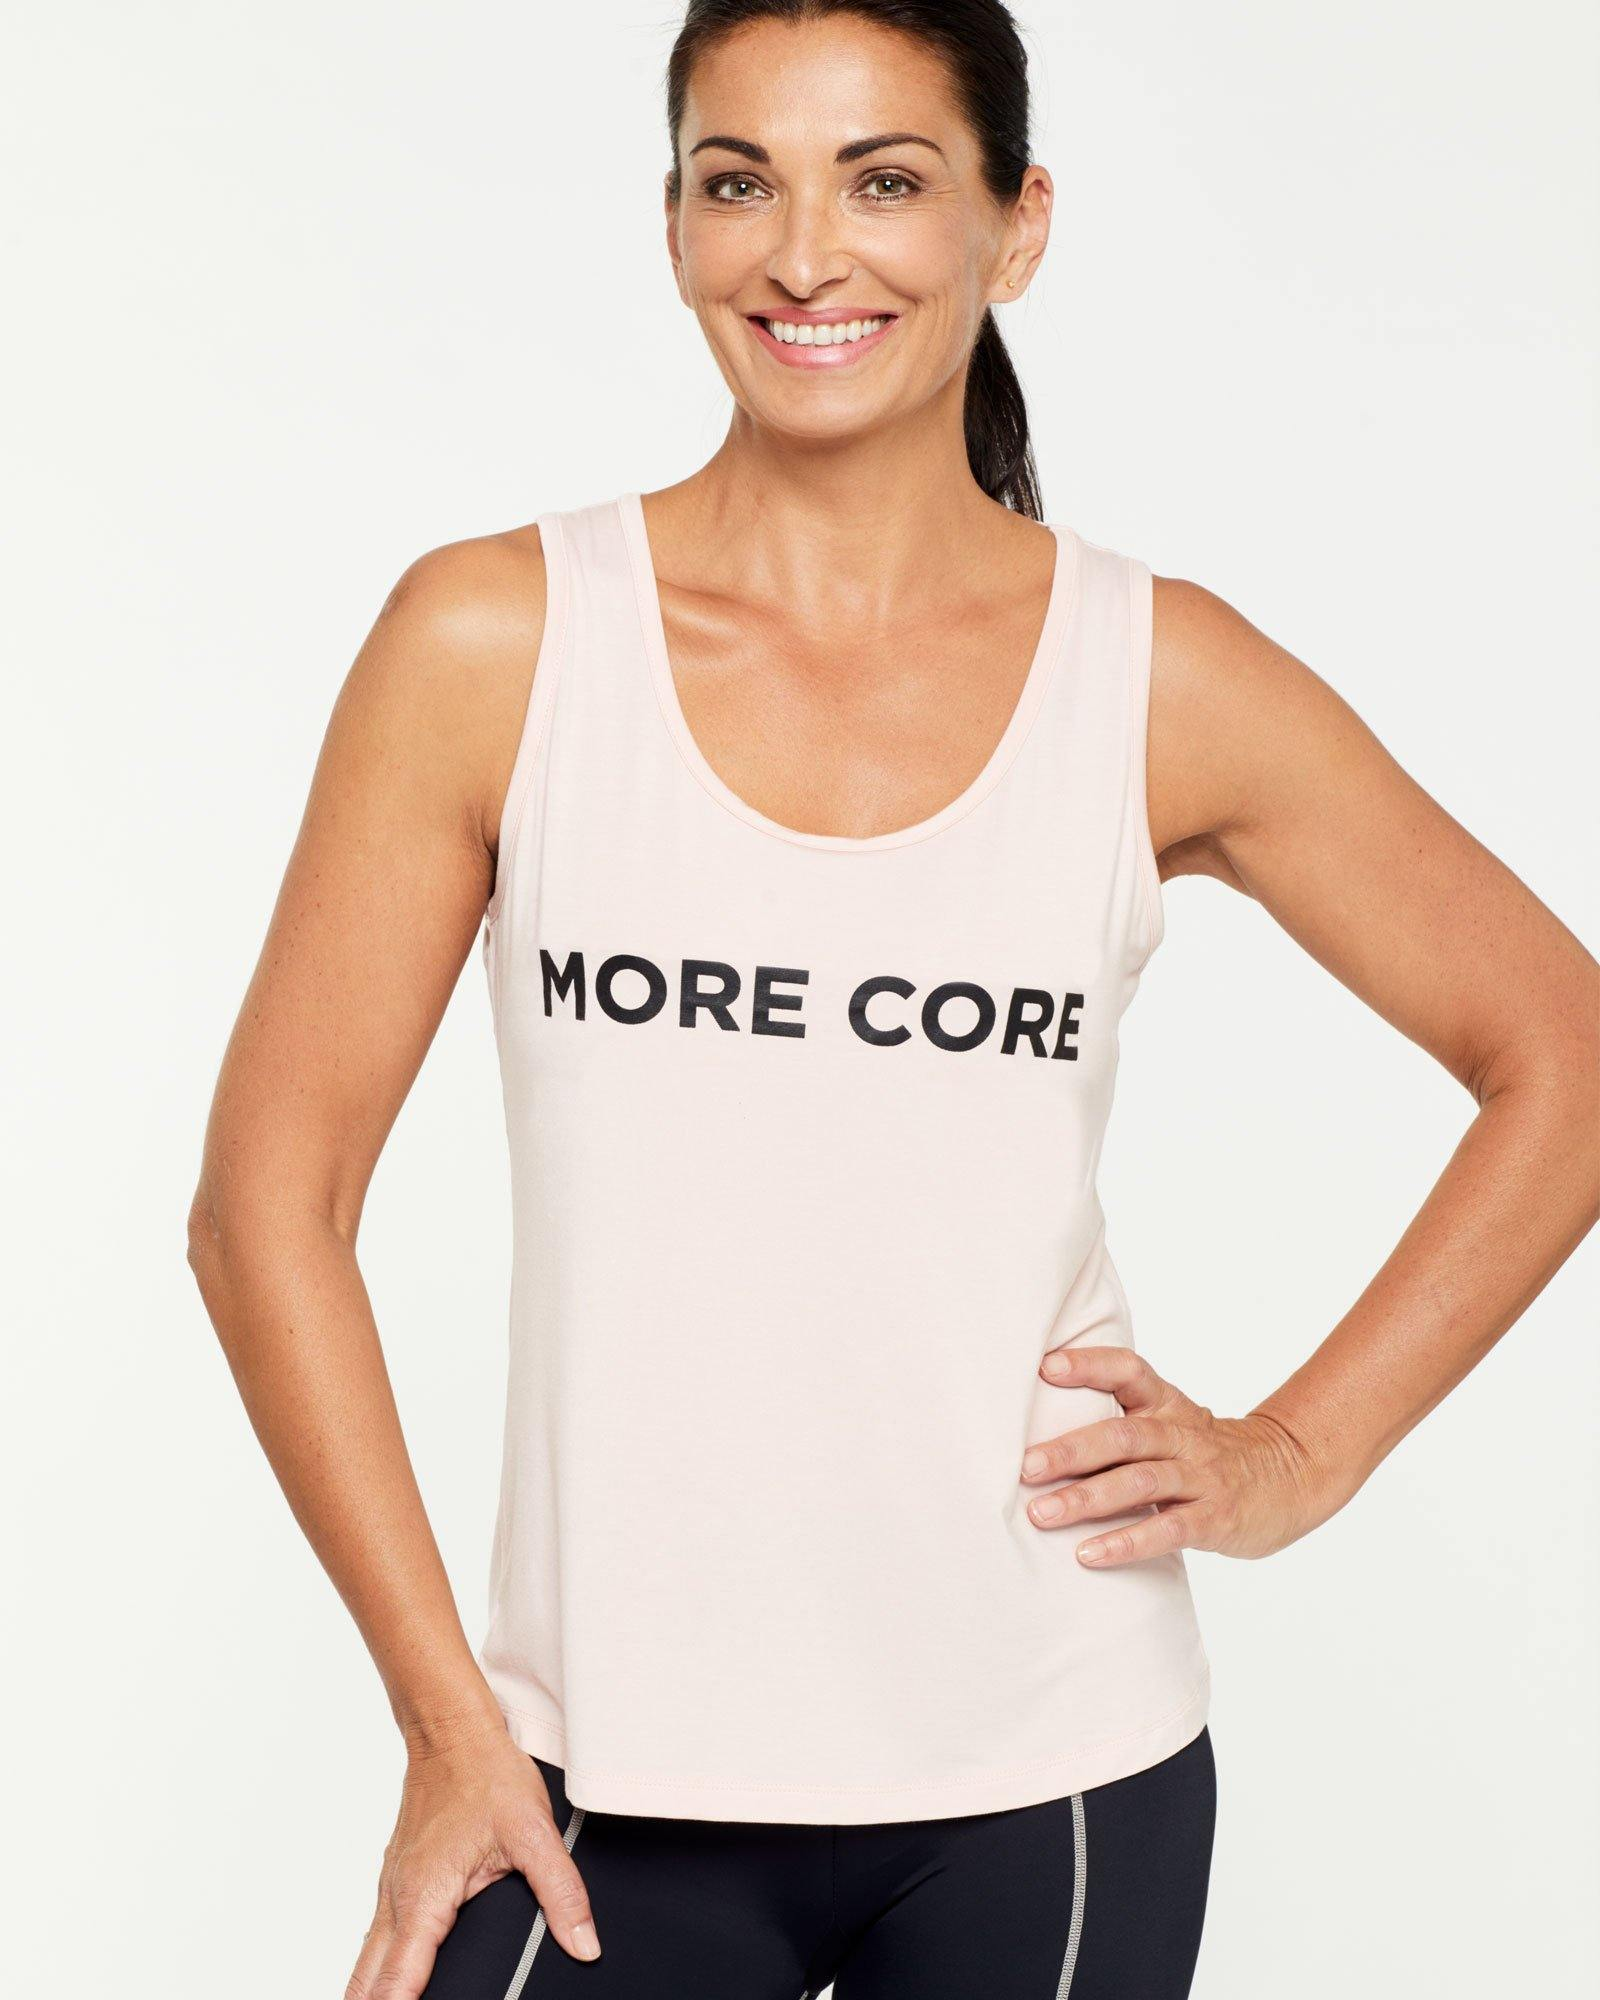 Warrior, RHOMBOIDEUS PINK TANK TOP, MORE CORE message on front in black, front view